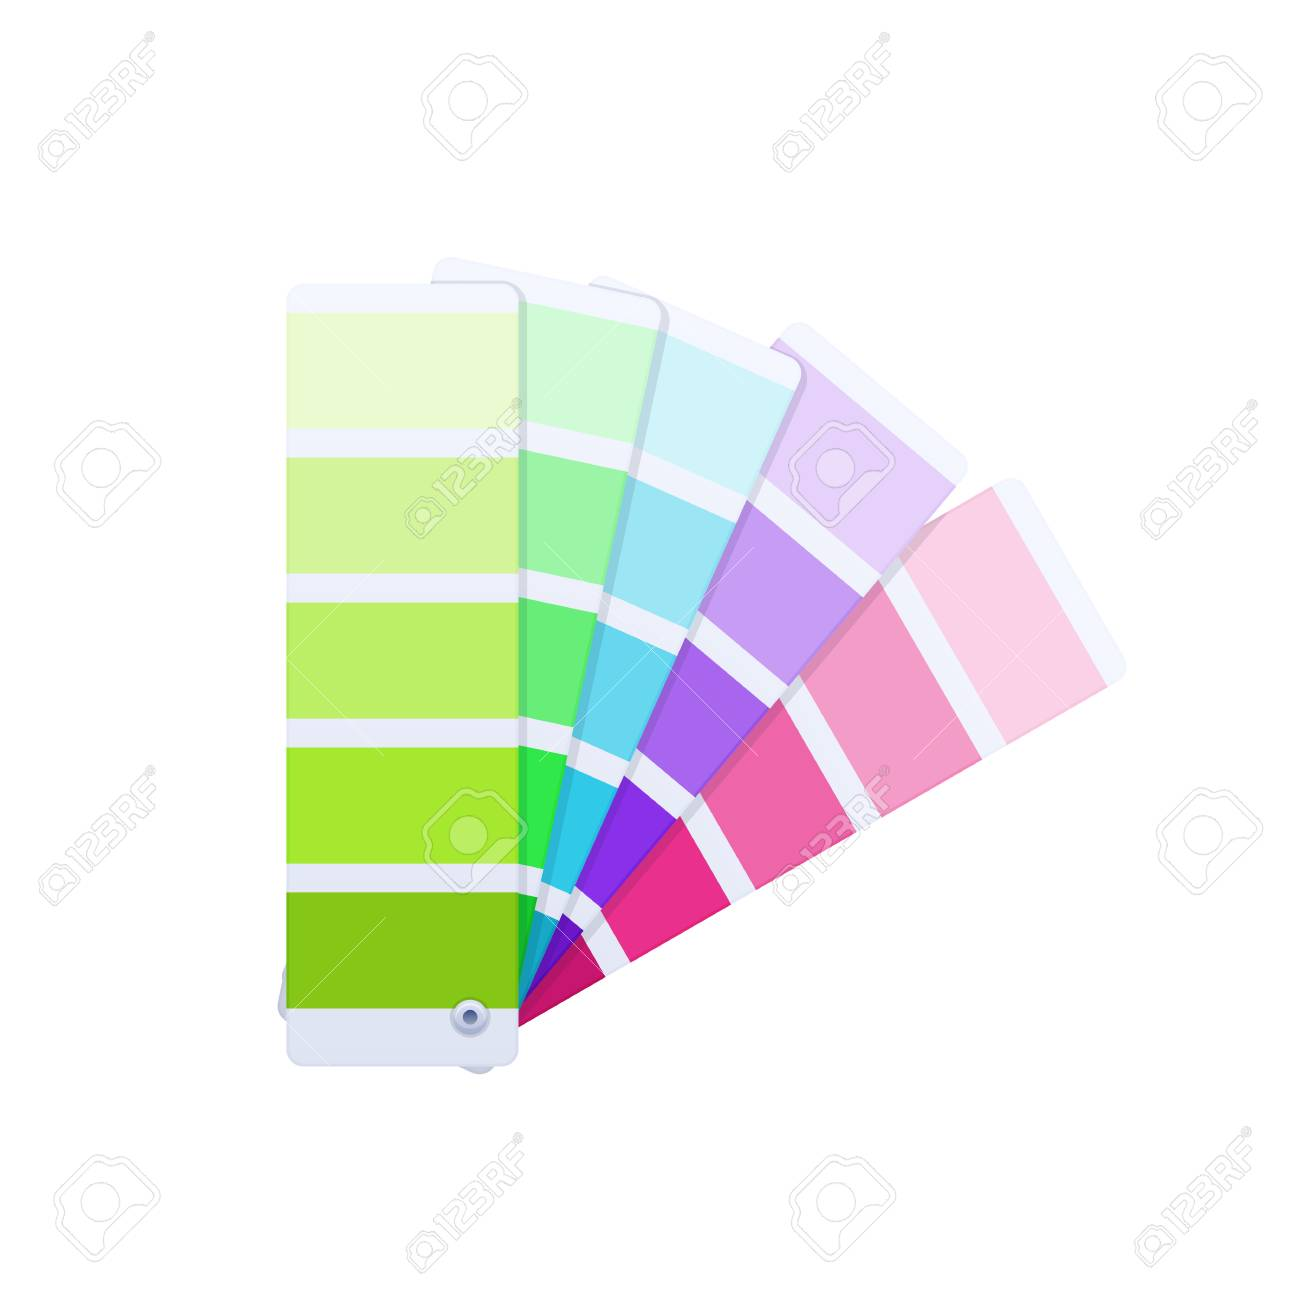 Modern Color Guide With Palette Of Paint Samples Creative Work Royalty Free Cliparts Vectors And Stock Illustration Image 97132447